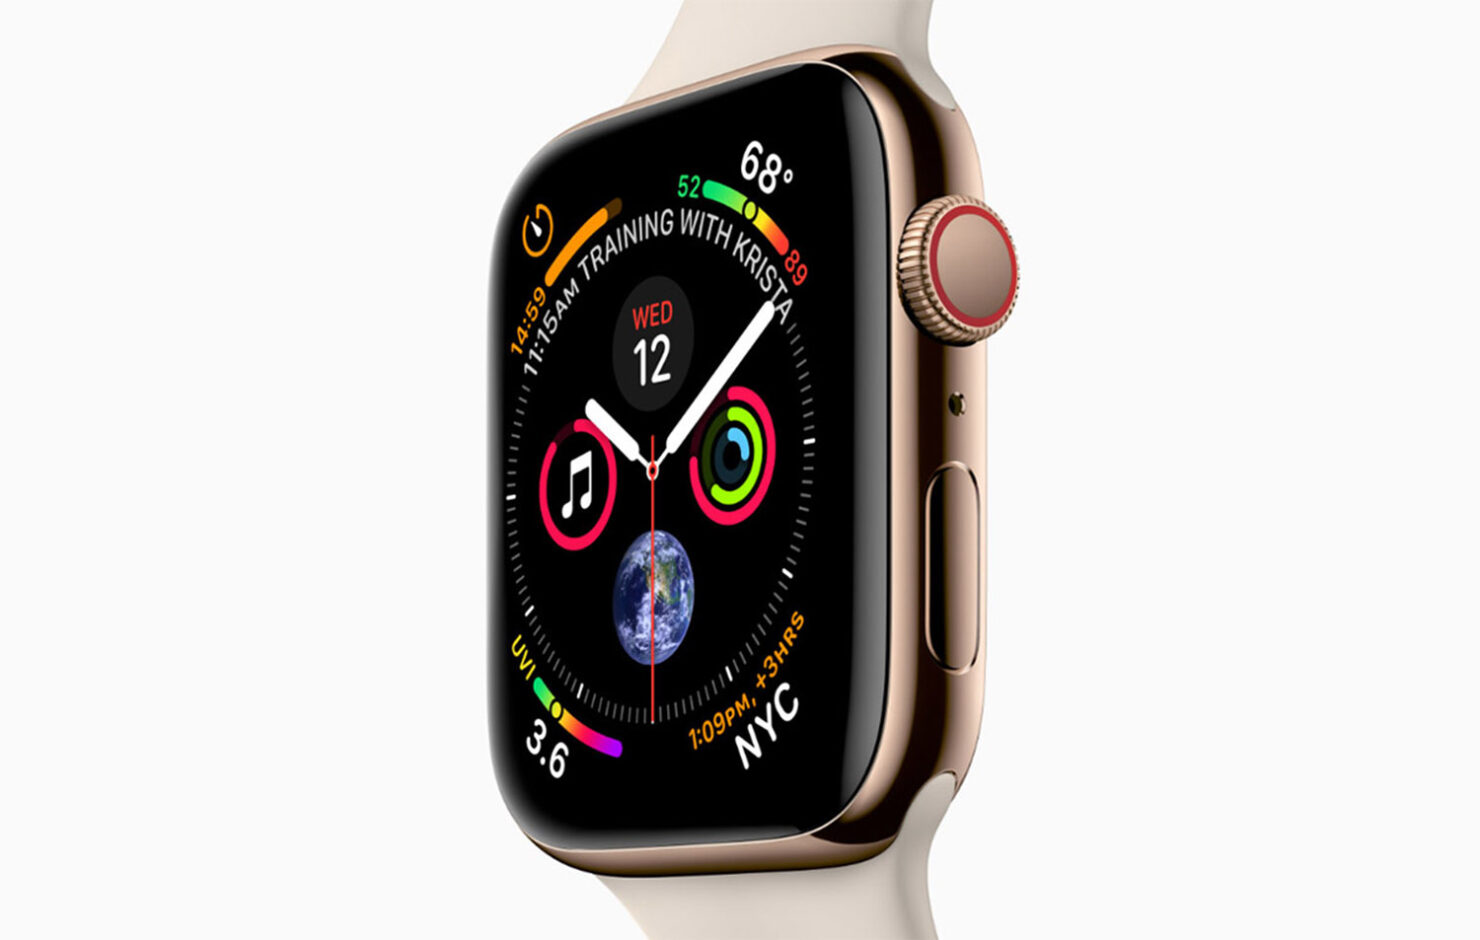 Apple Watch Shipments Register a 50 Percent Annual Growth in Q1 2021, as It Captures One-Third of the Market, but Not Without Some Competition